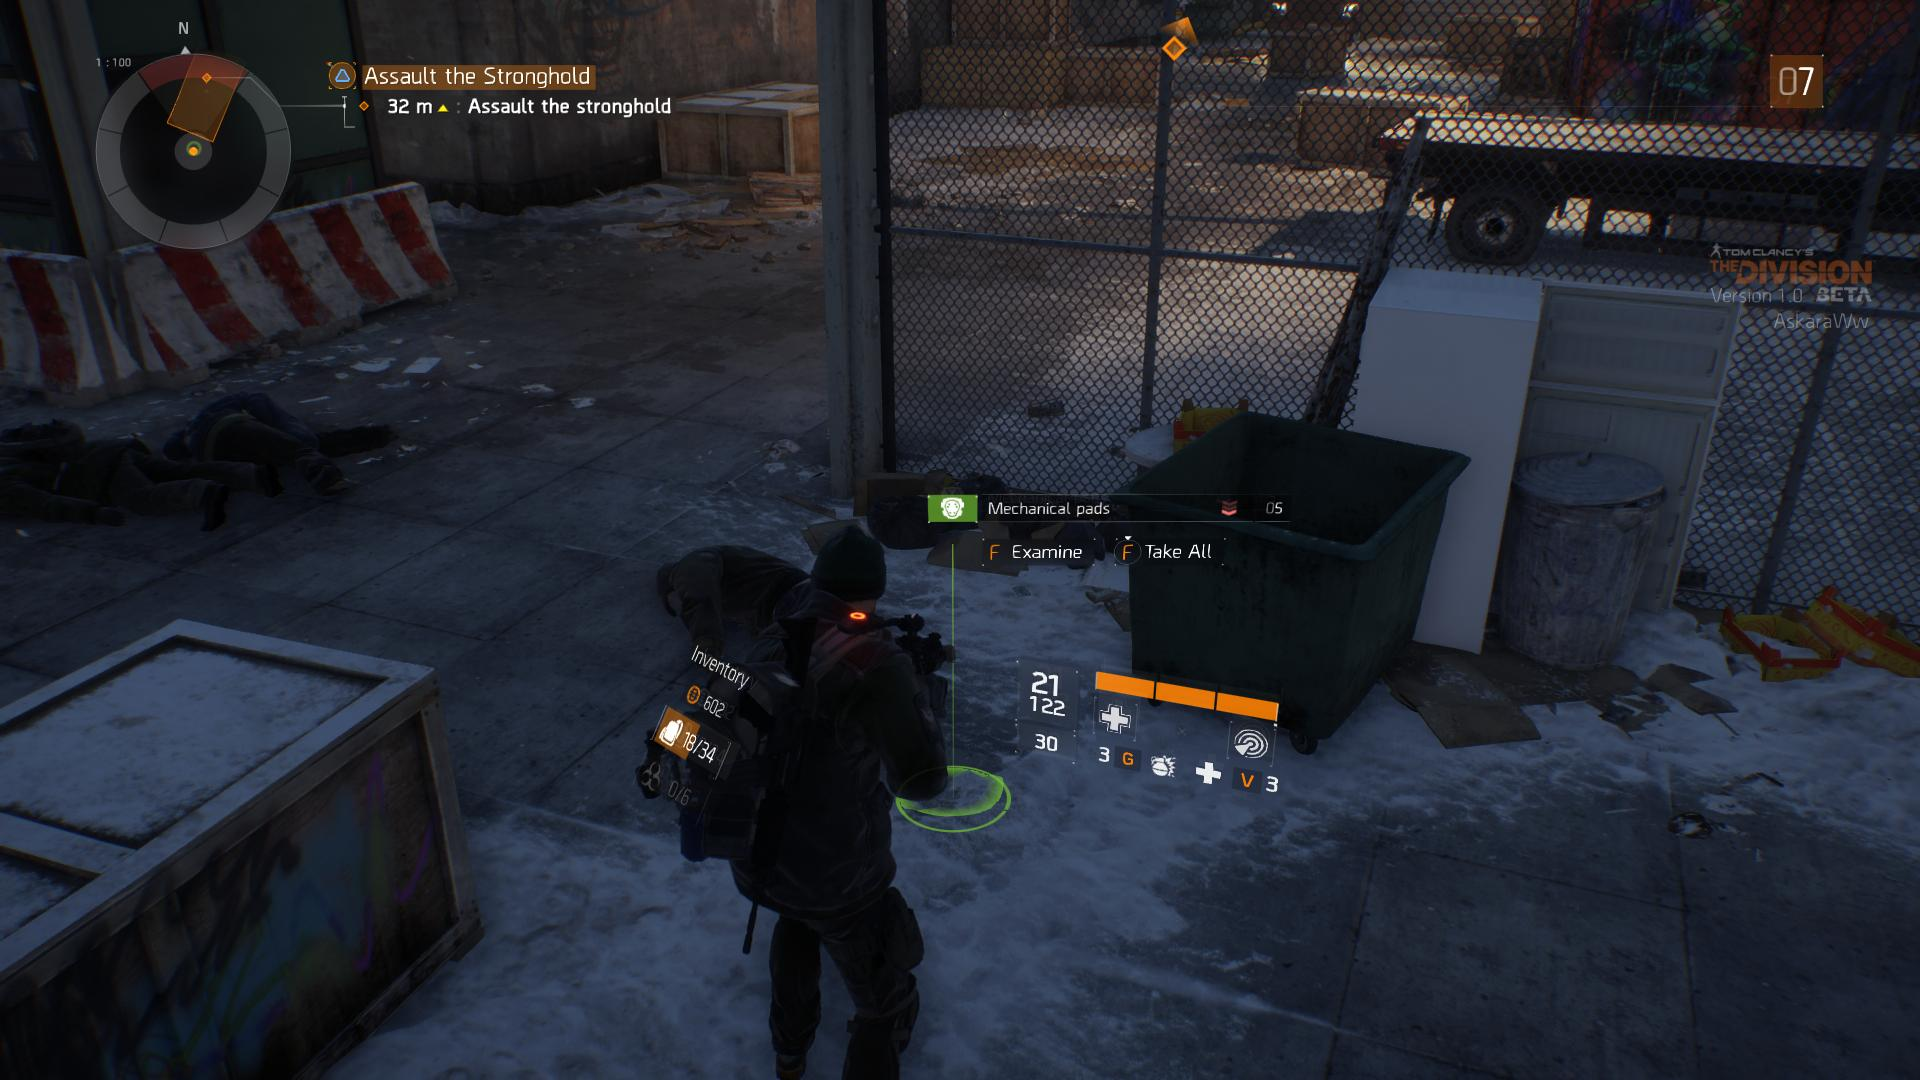 Tom Clancy's The Division Dojmy z Bety (PC) 11207